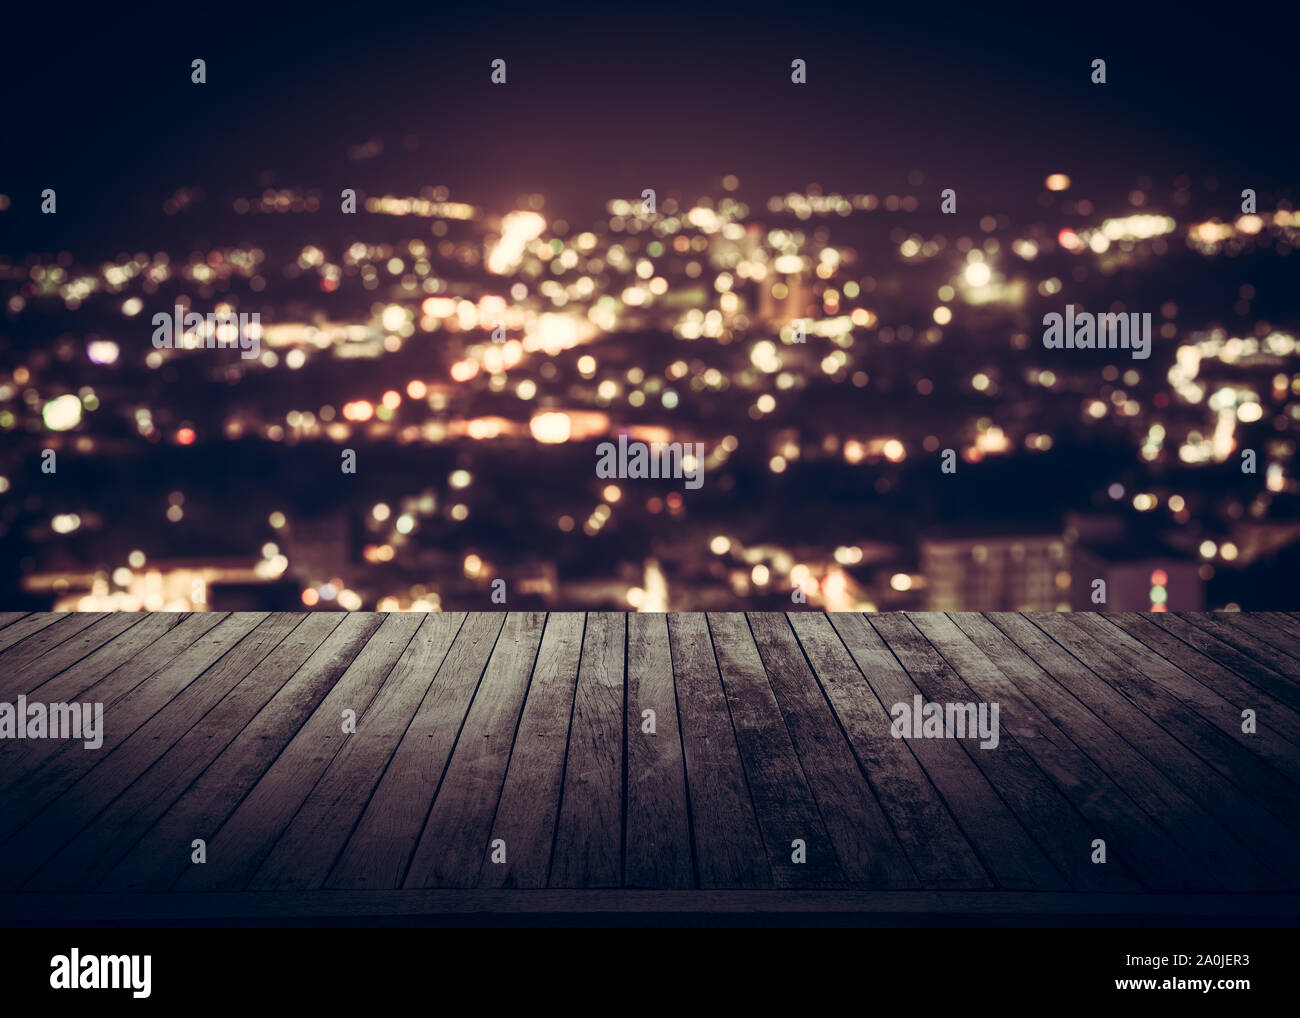 View from wooden plank above phuket town at night Stock Photo